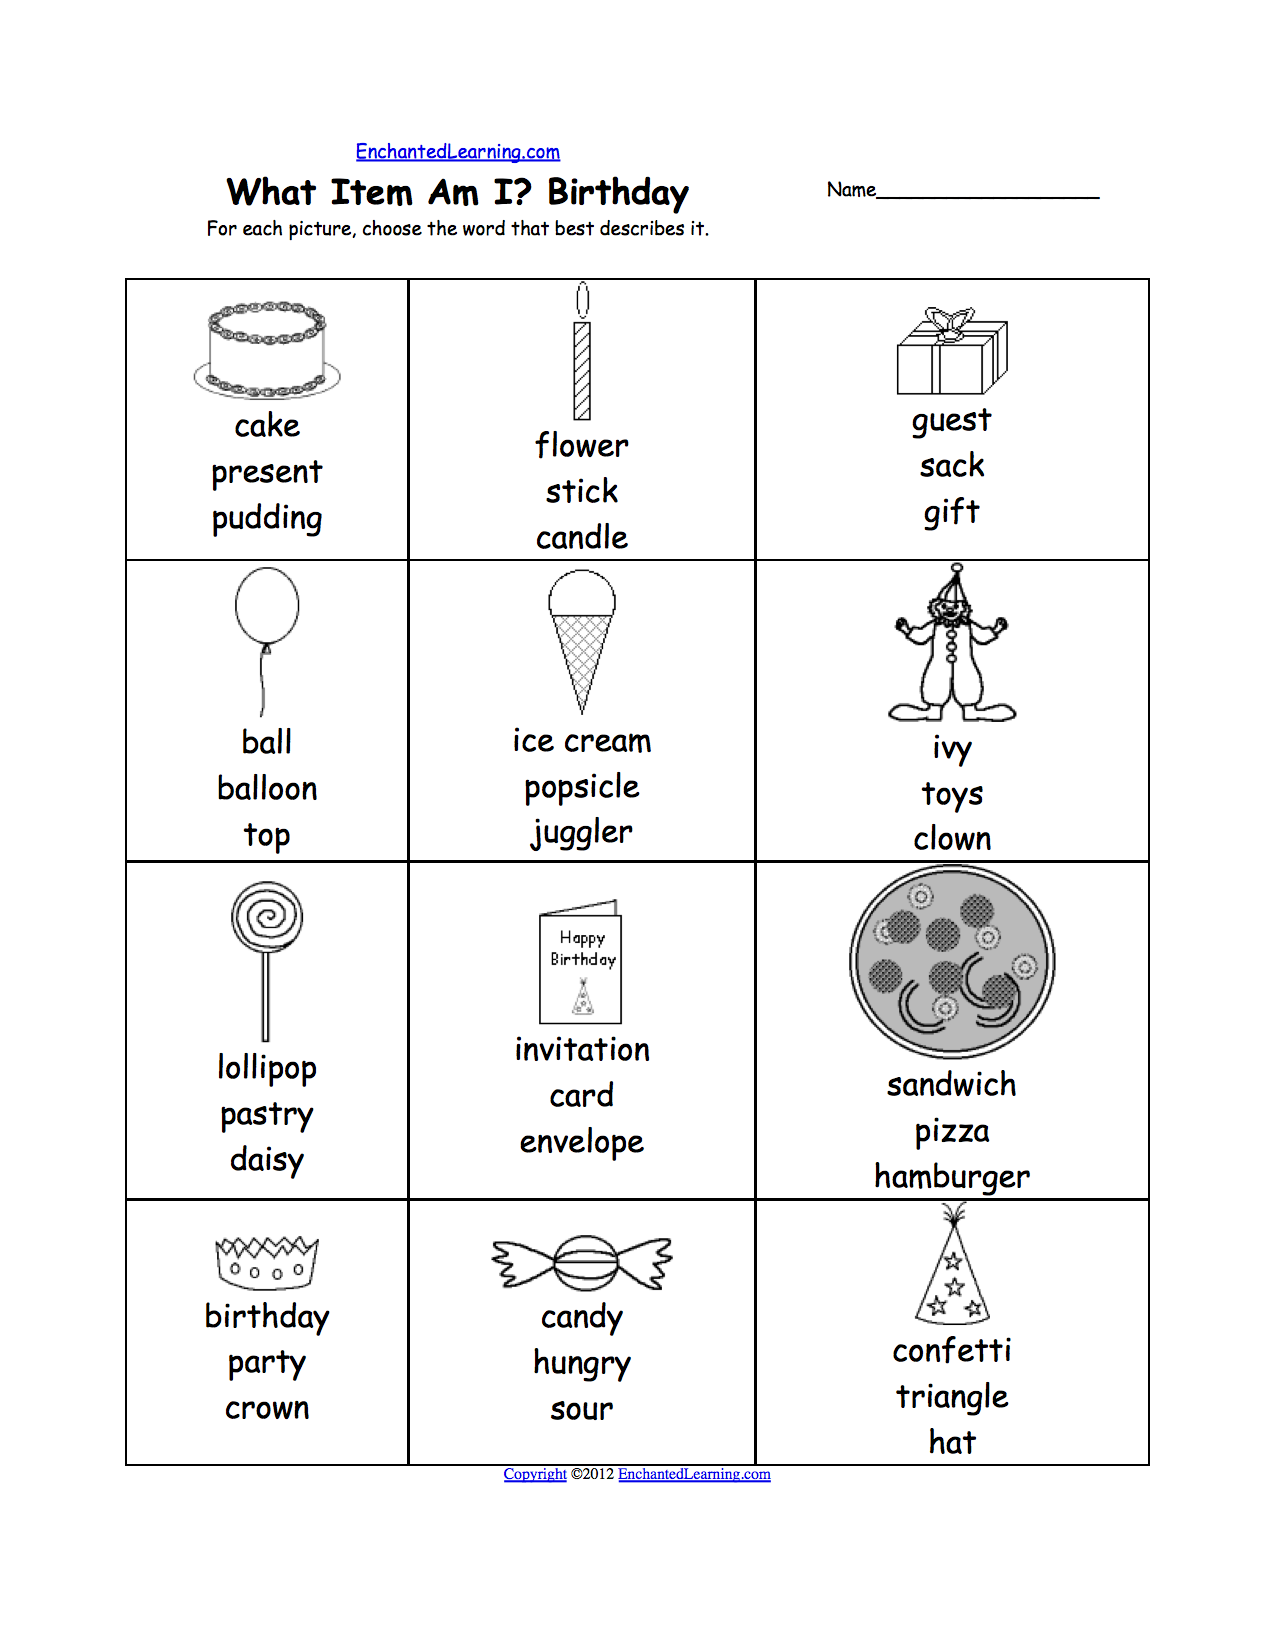 worksheet Who Am I Worksheet what am i worksheet printouts enchantedlearning com birthday party for each picture choose the word that best describes it or go to answers